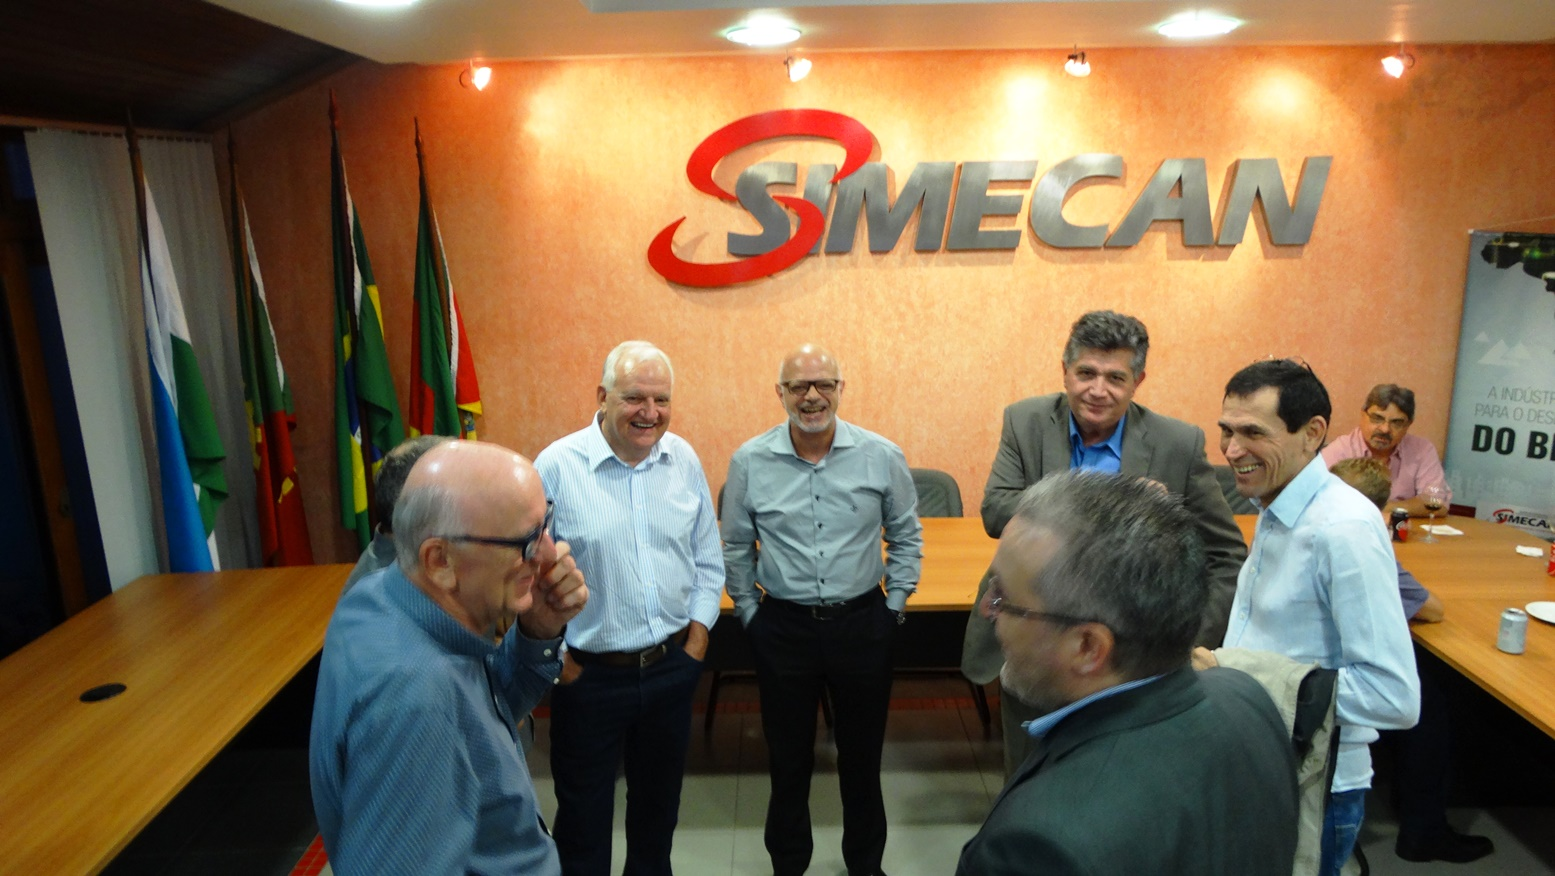 Confraternização de final de ano do Simecan